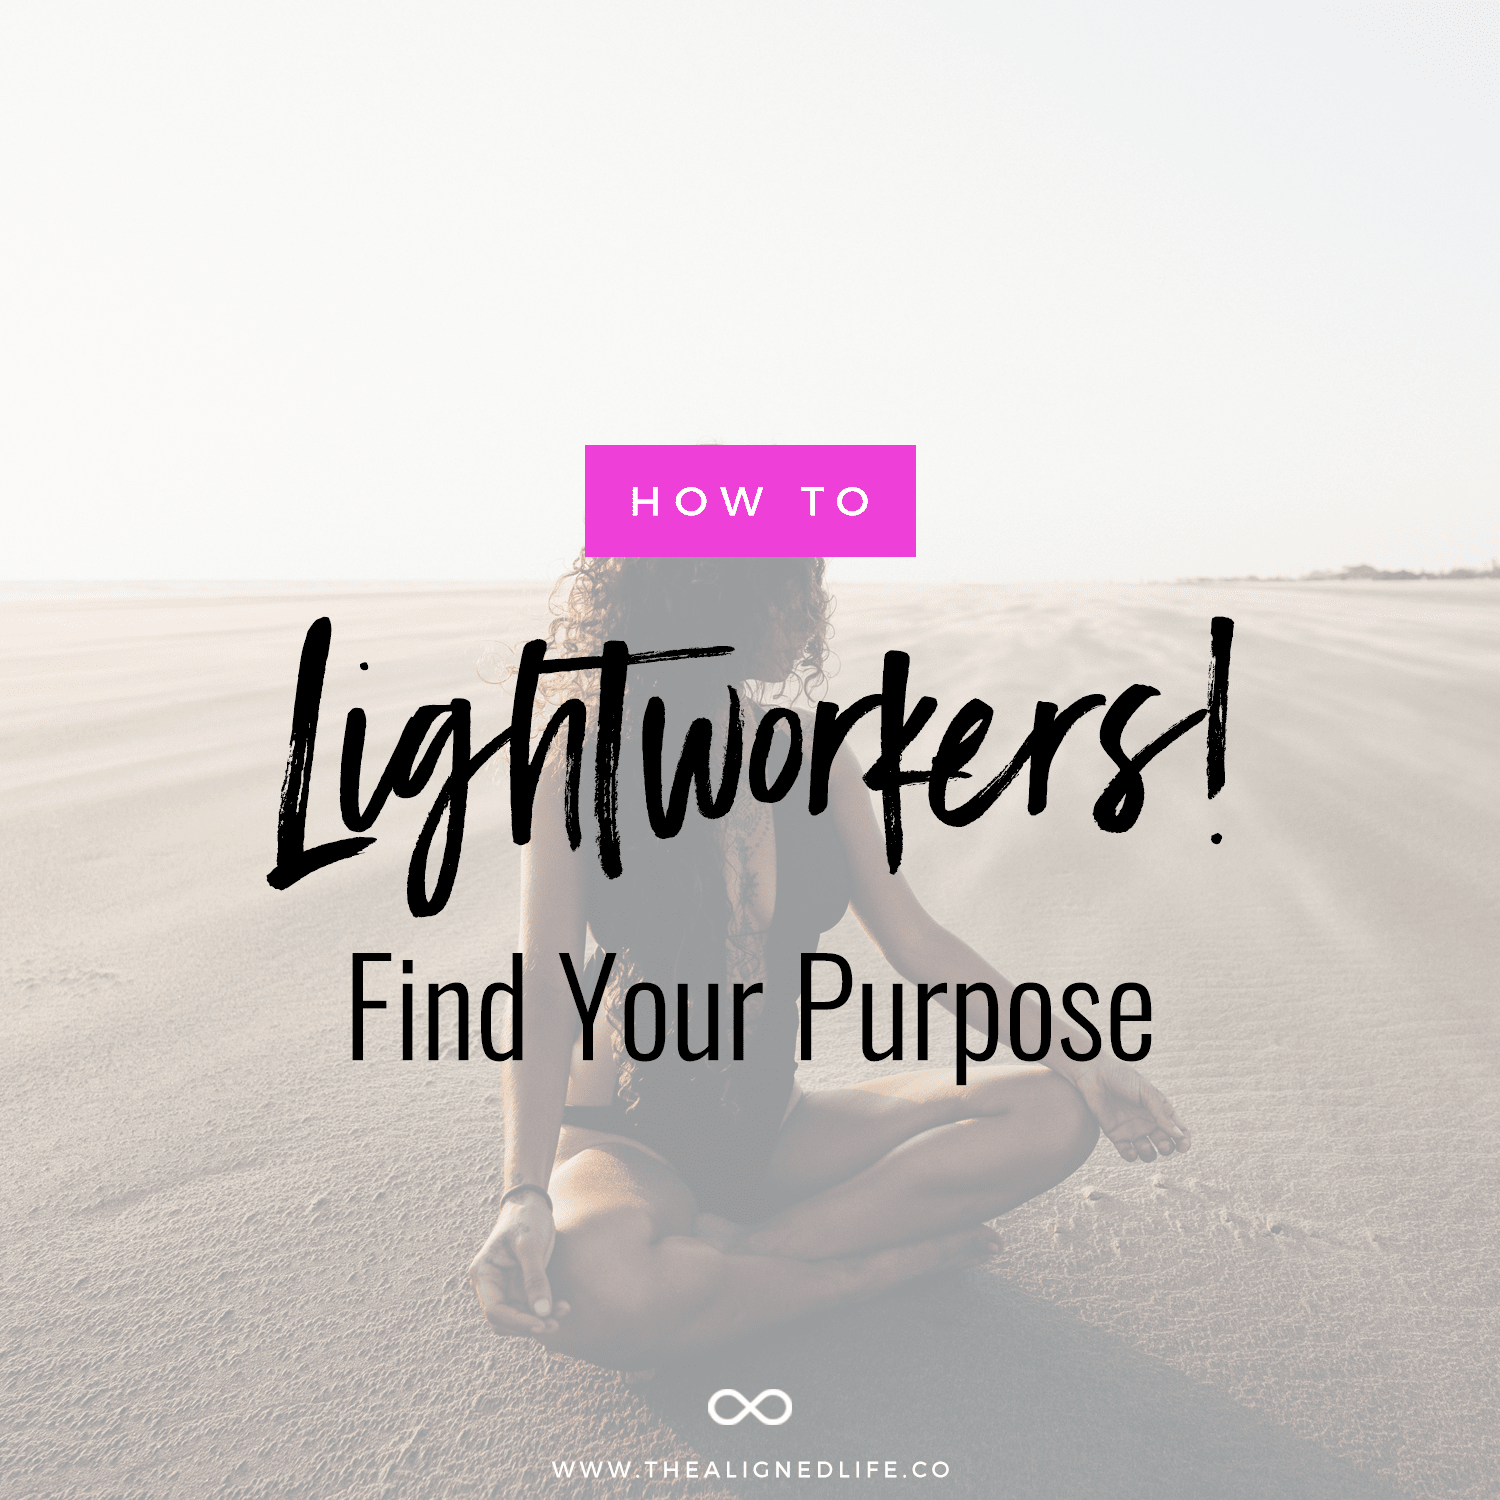 Lightworkers! 3 Questions To Help You Find Your Purpose